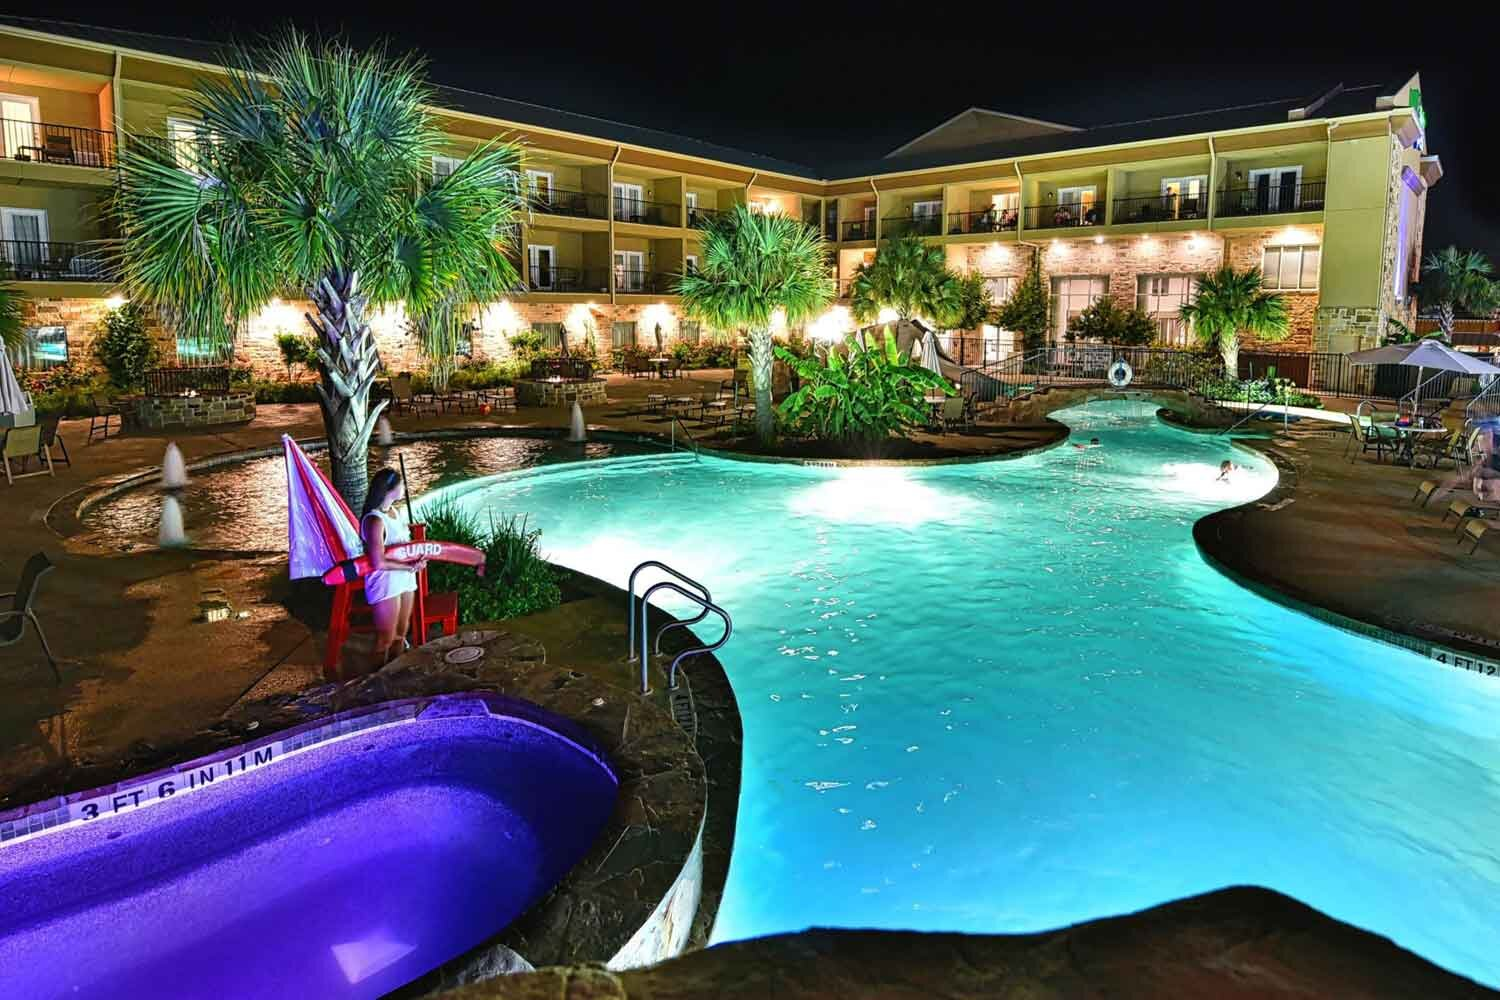 Holiday Inn Express Hotel and Suites - Fredericksburg, Texas (Five Nights)Top-Ranked Hotel located directly in Fredericksburg.